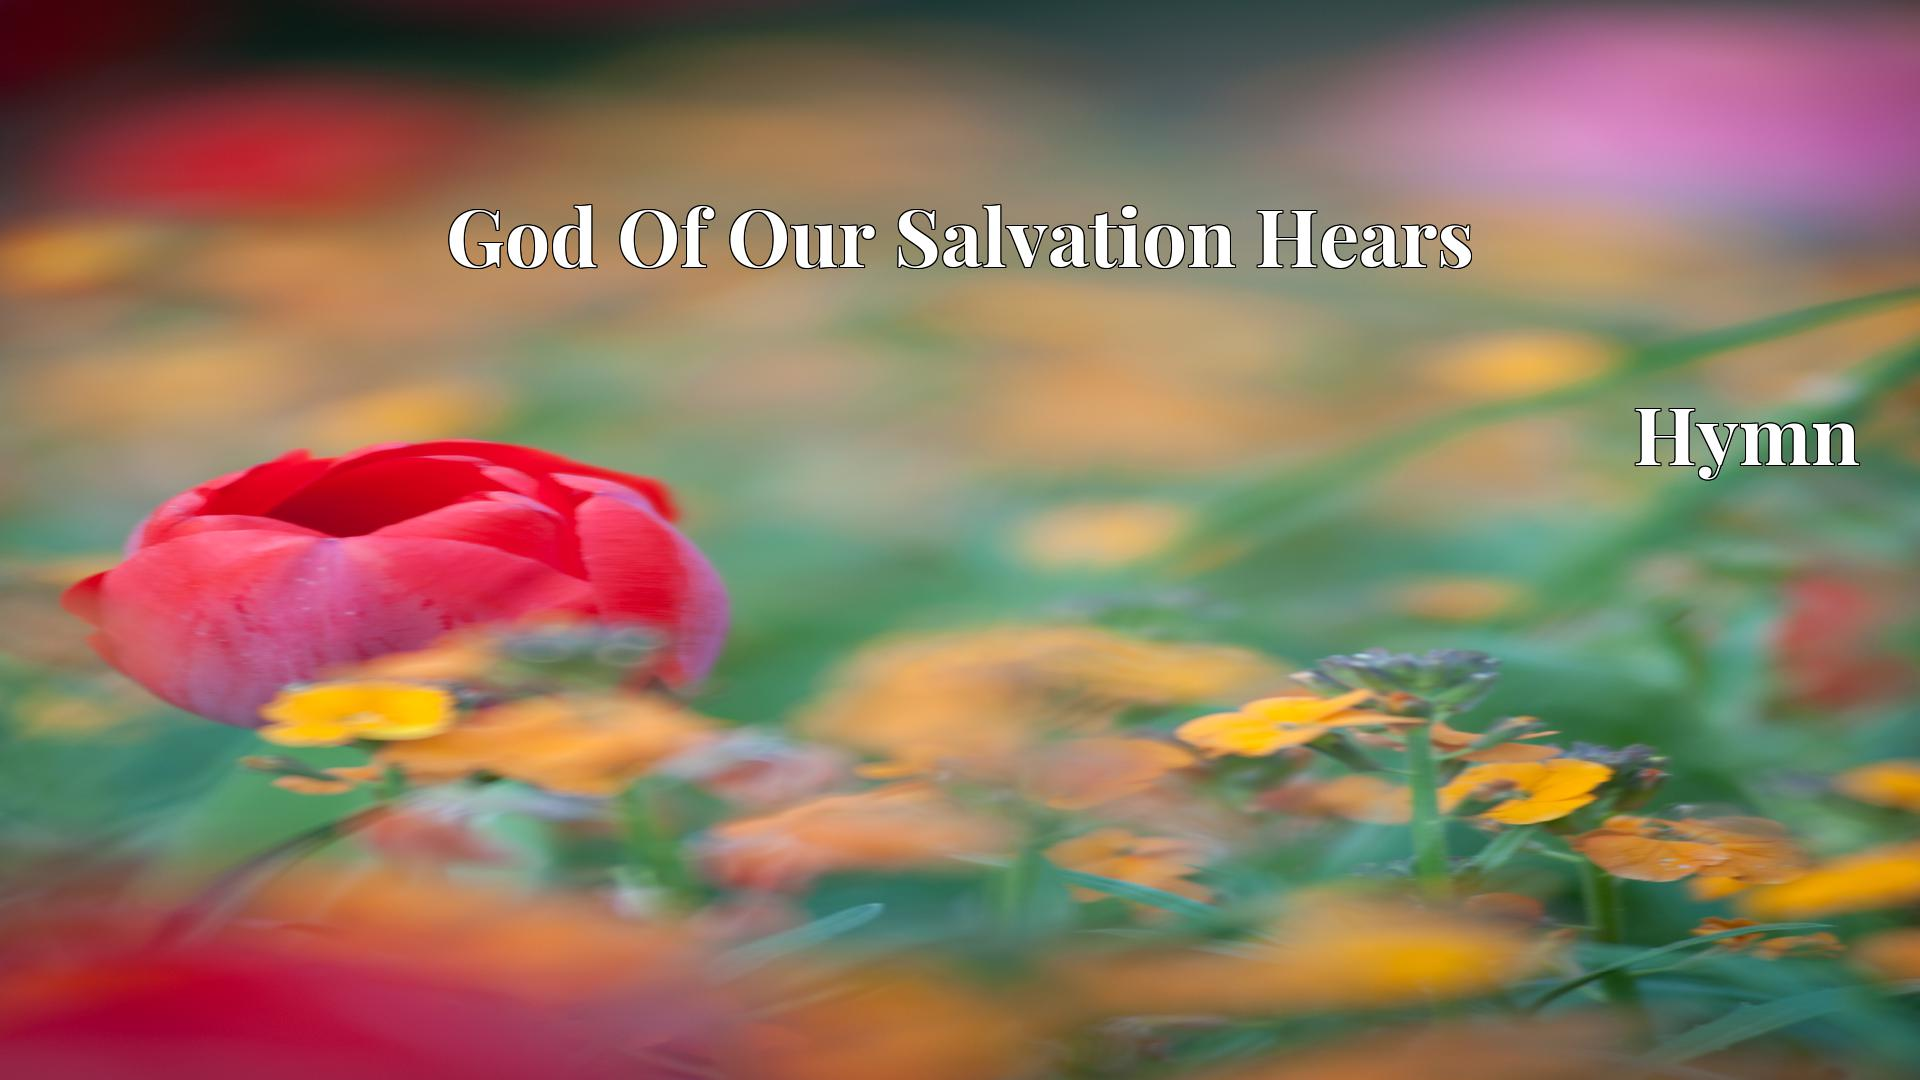 God Of Our Salvation Hears - Hymn